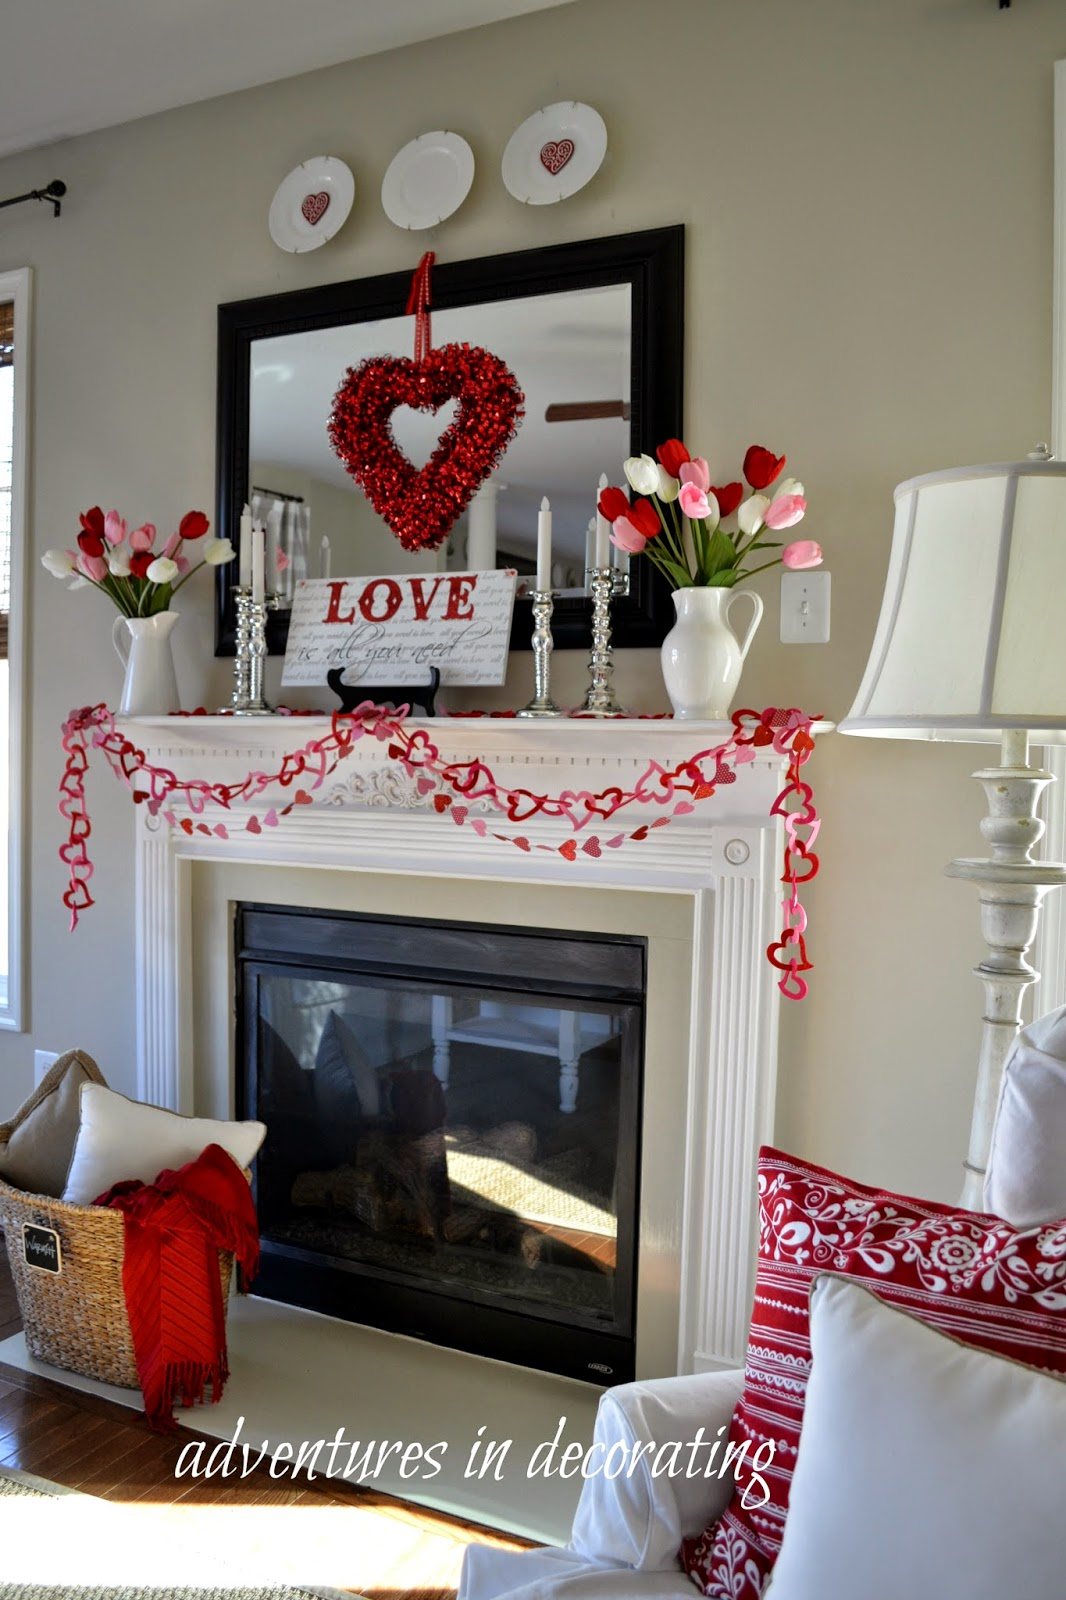 Adventures in decorating 2015 valentine mantel heart and for Blog design ideas